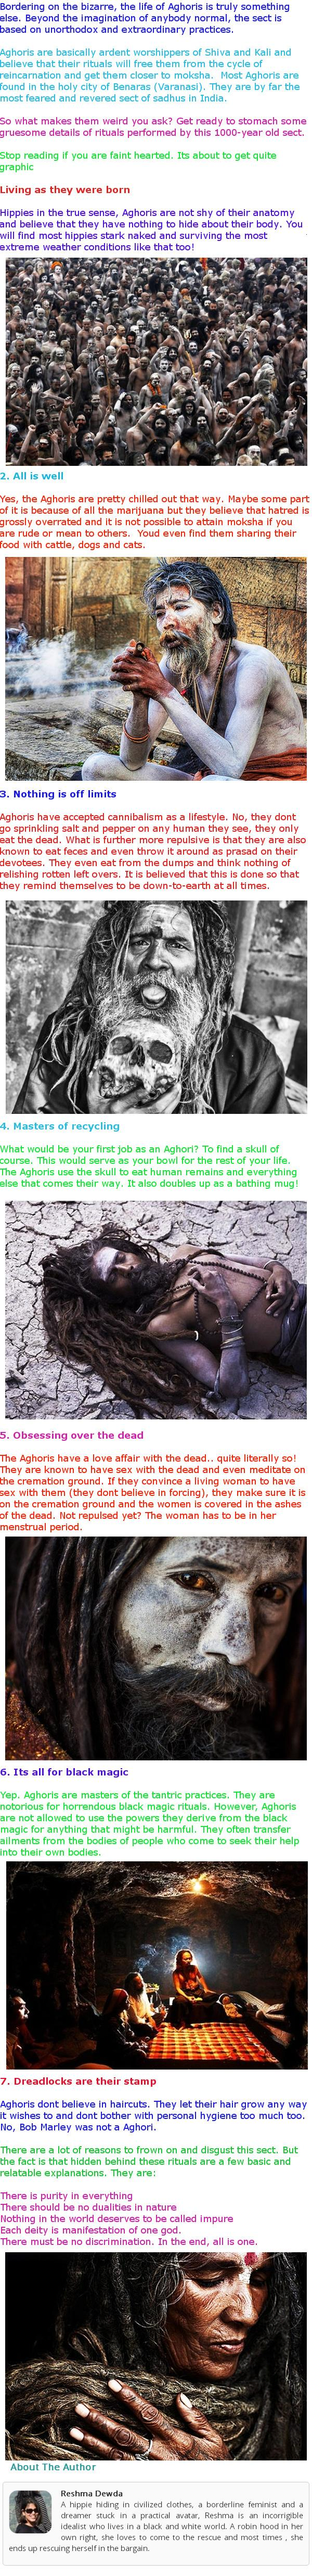 Aghori Sadhus: Some More Facts | Metaphysics Knowledge